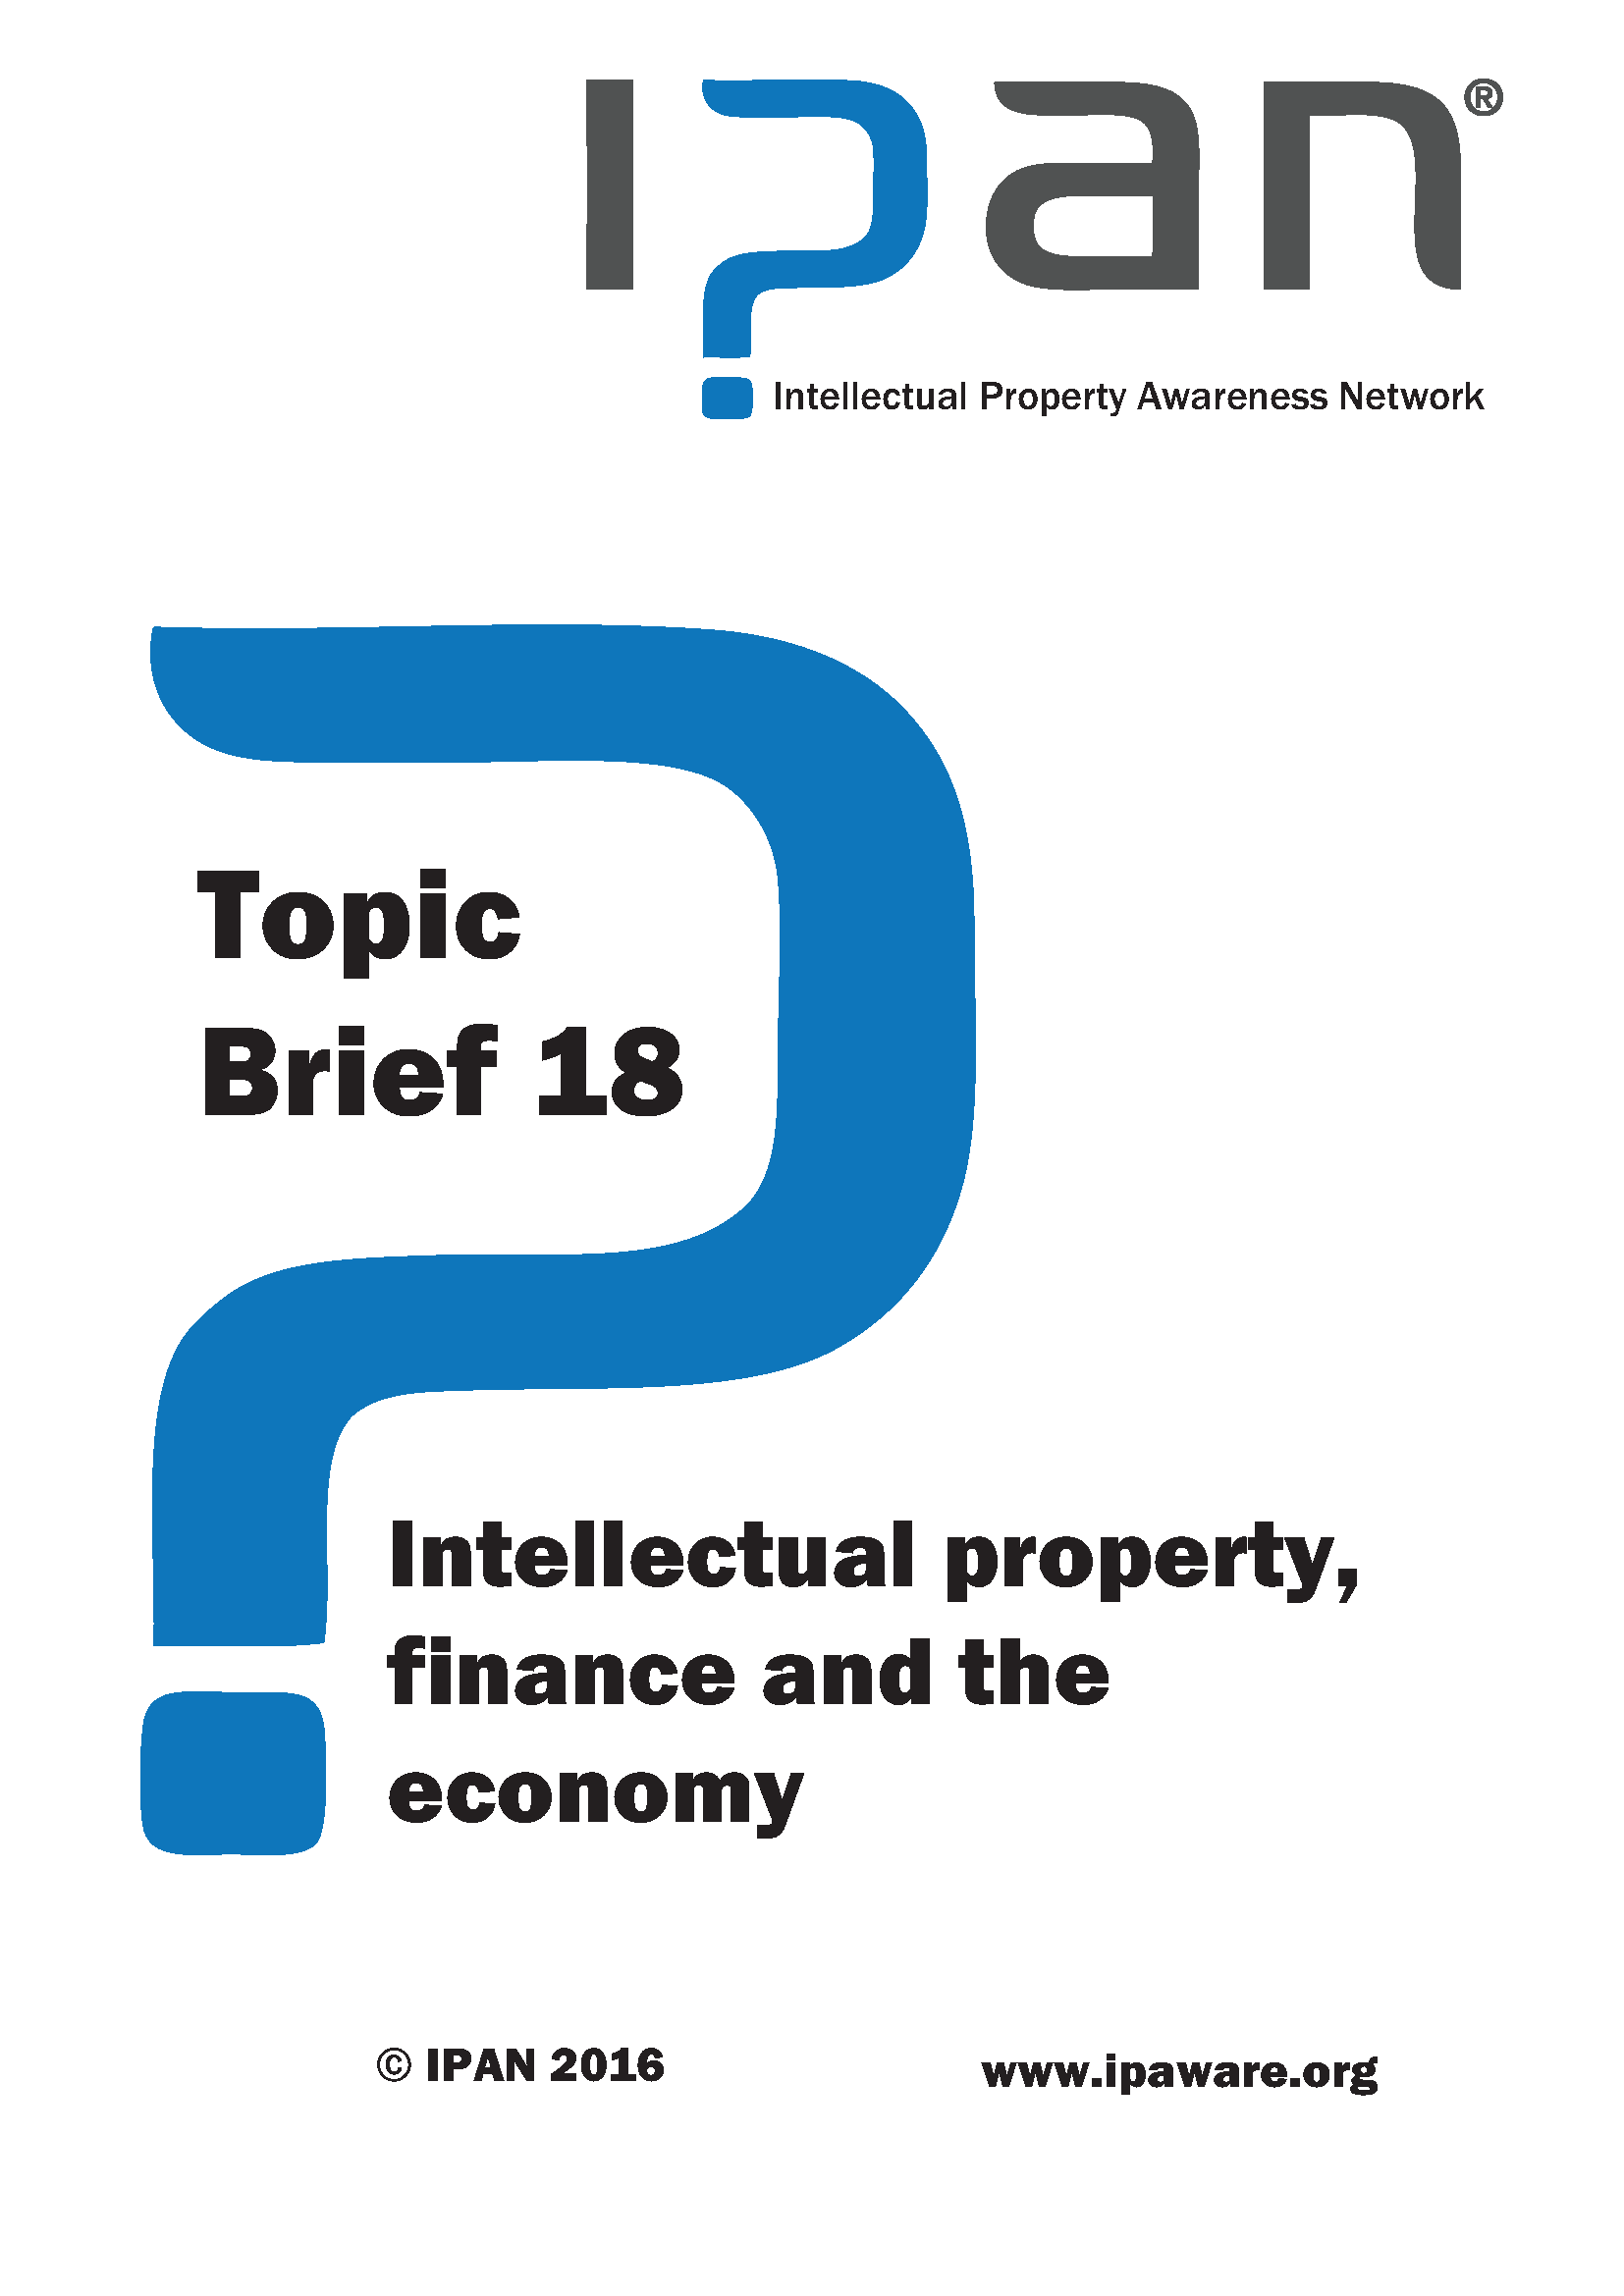 IP finance and the economy